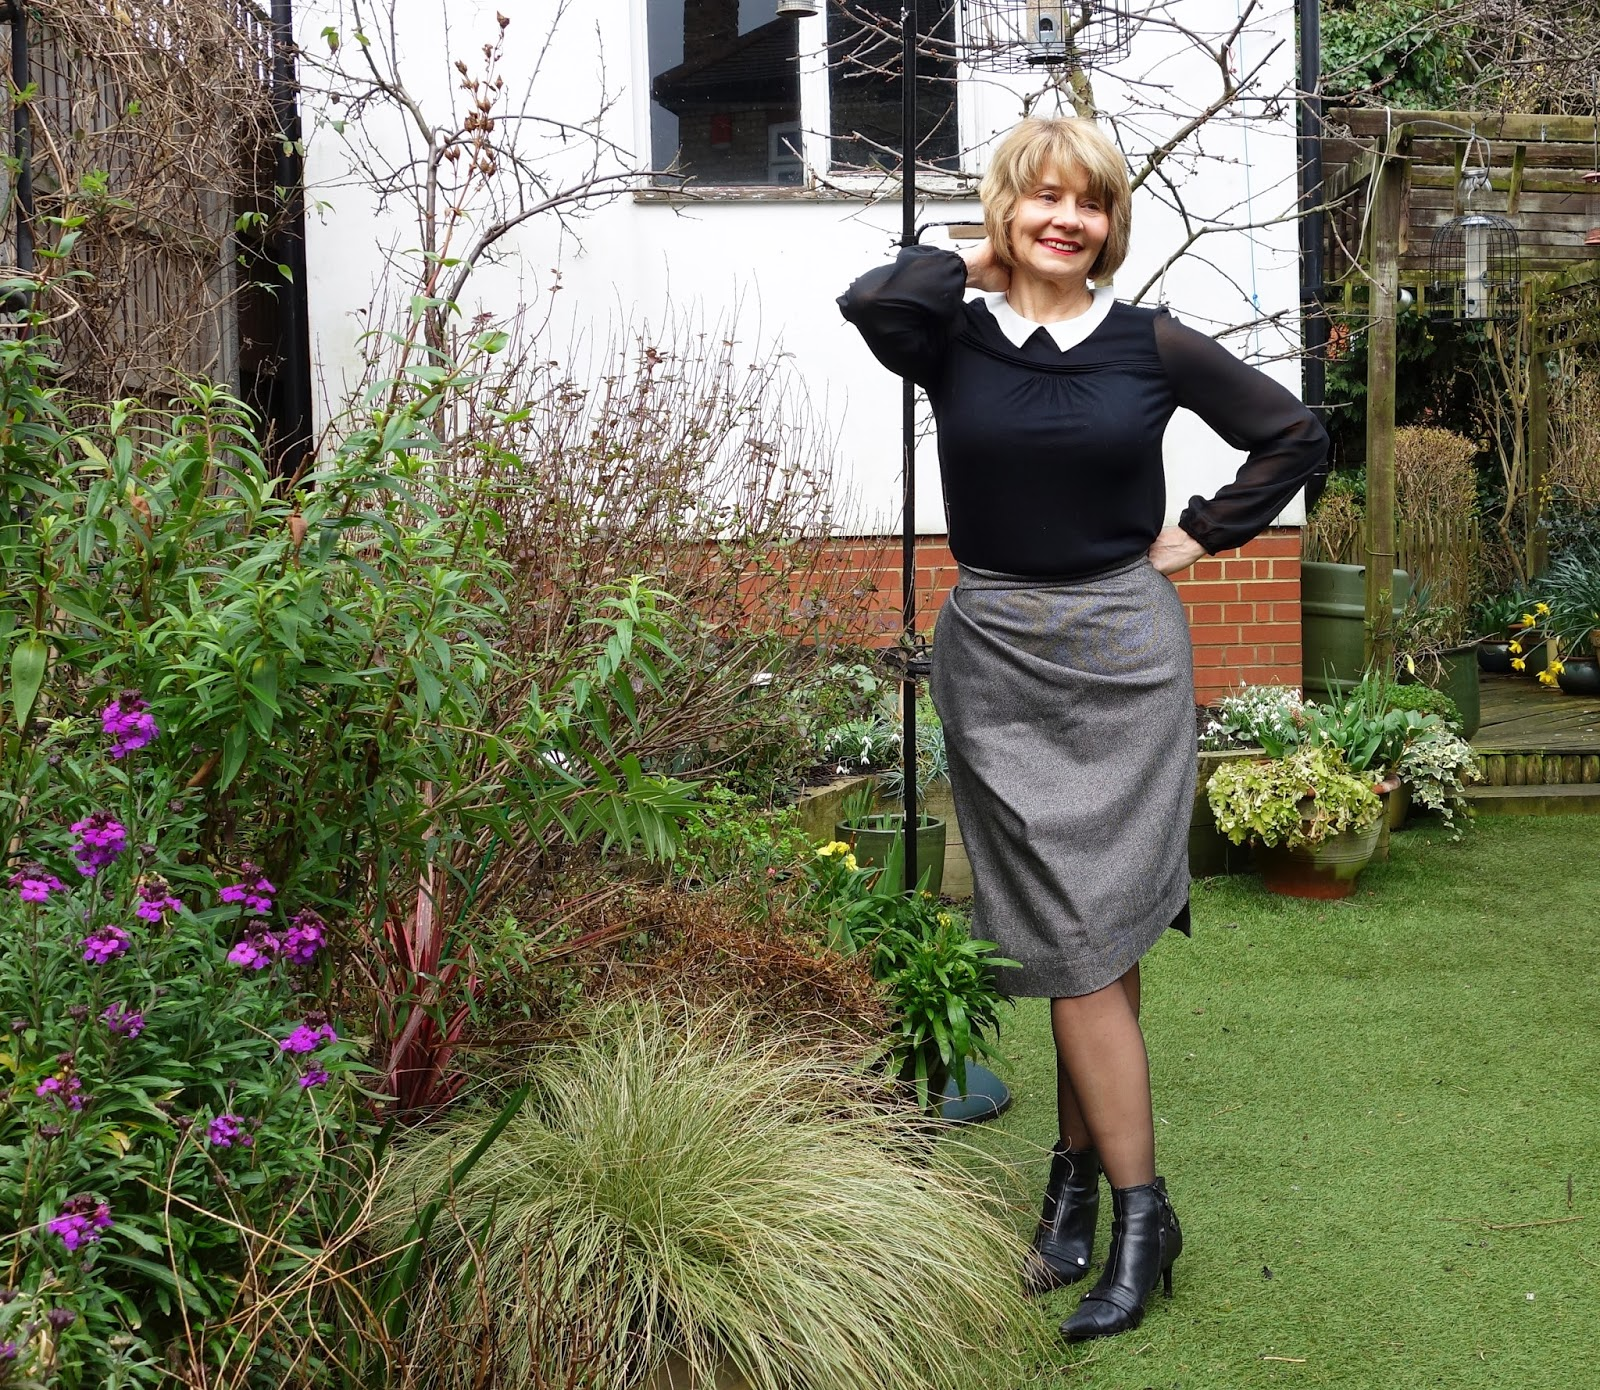 Confidence outfits: grey Vivienne Westwood skirt and black embellished jumper from Boden